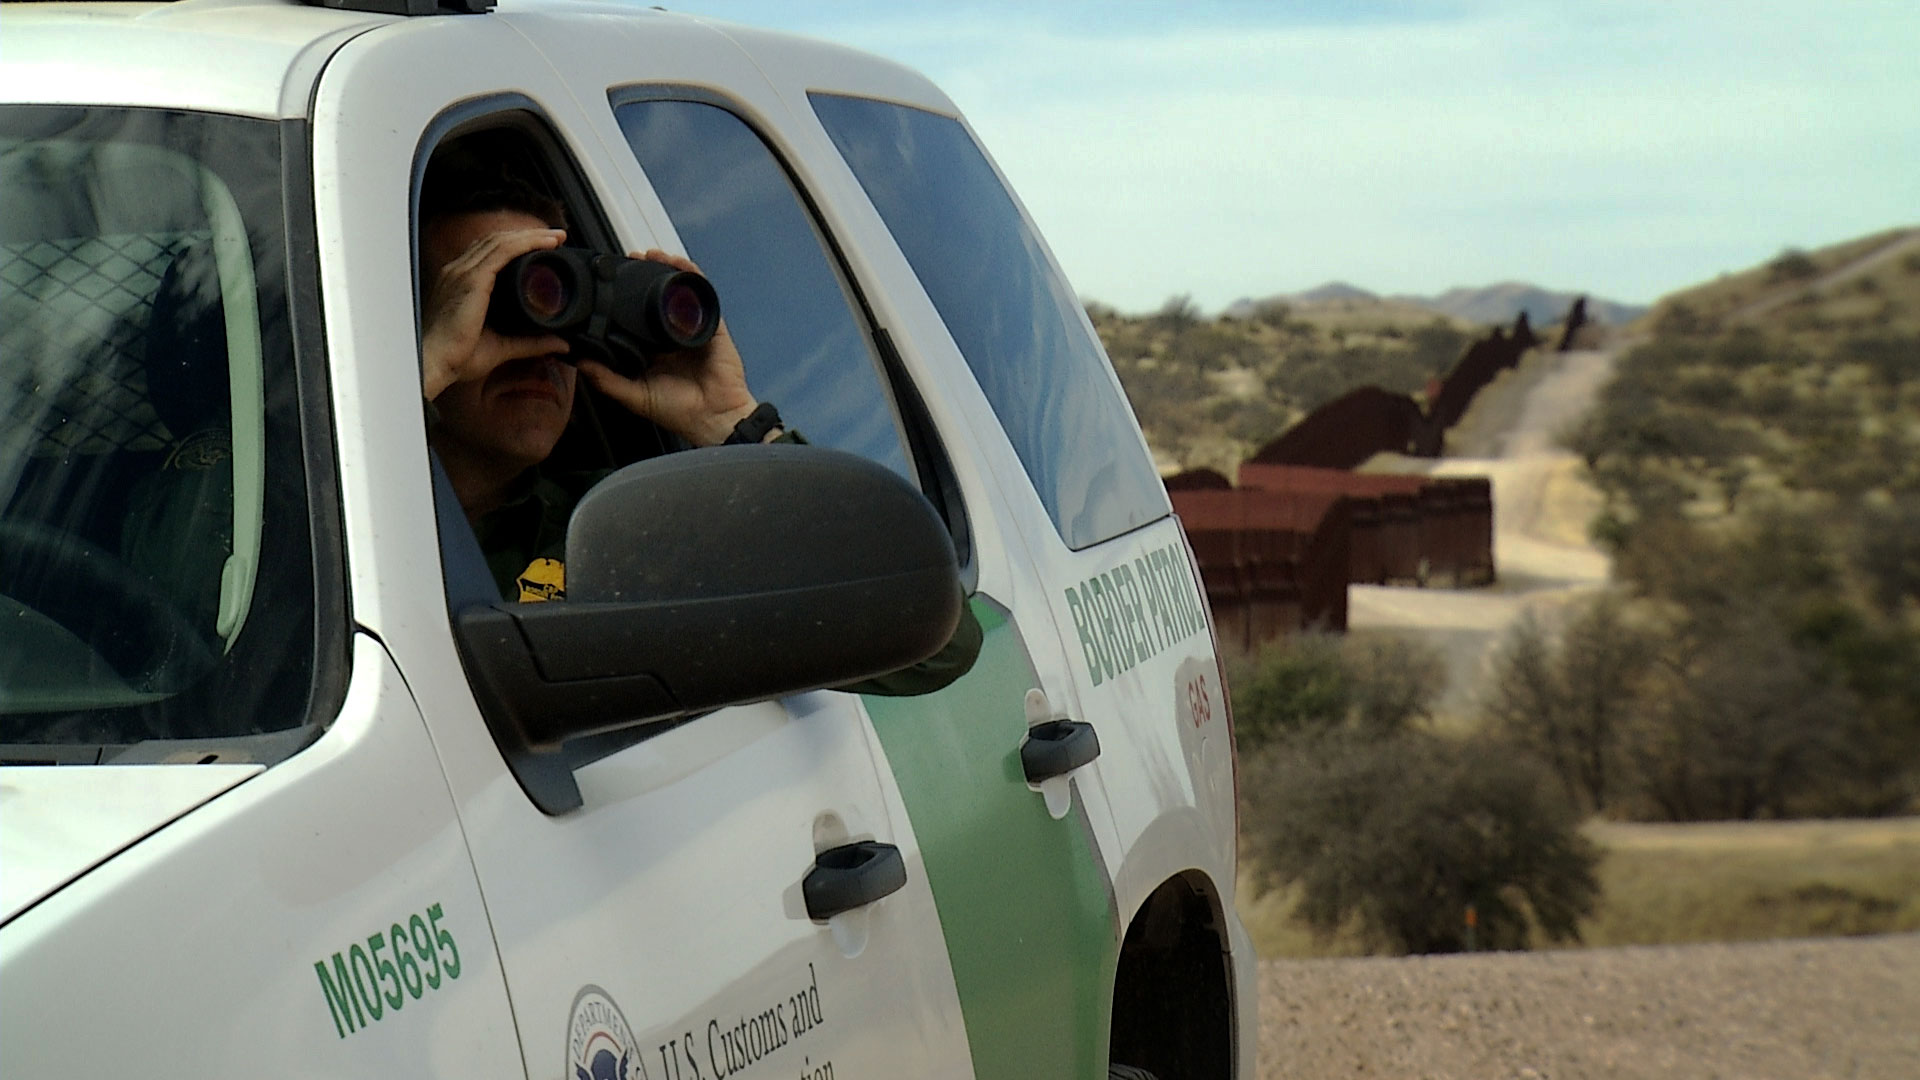 File image of a Border Patrol agent using binoculars to surveil an area just north of Arizona's border with Mexico.